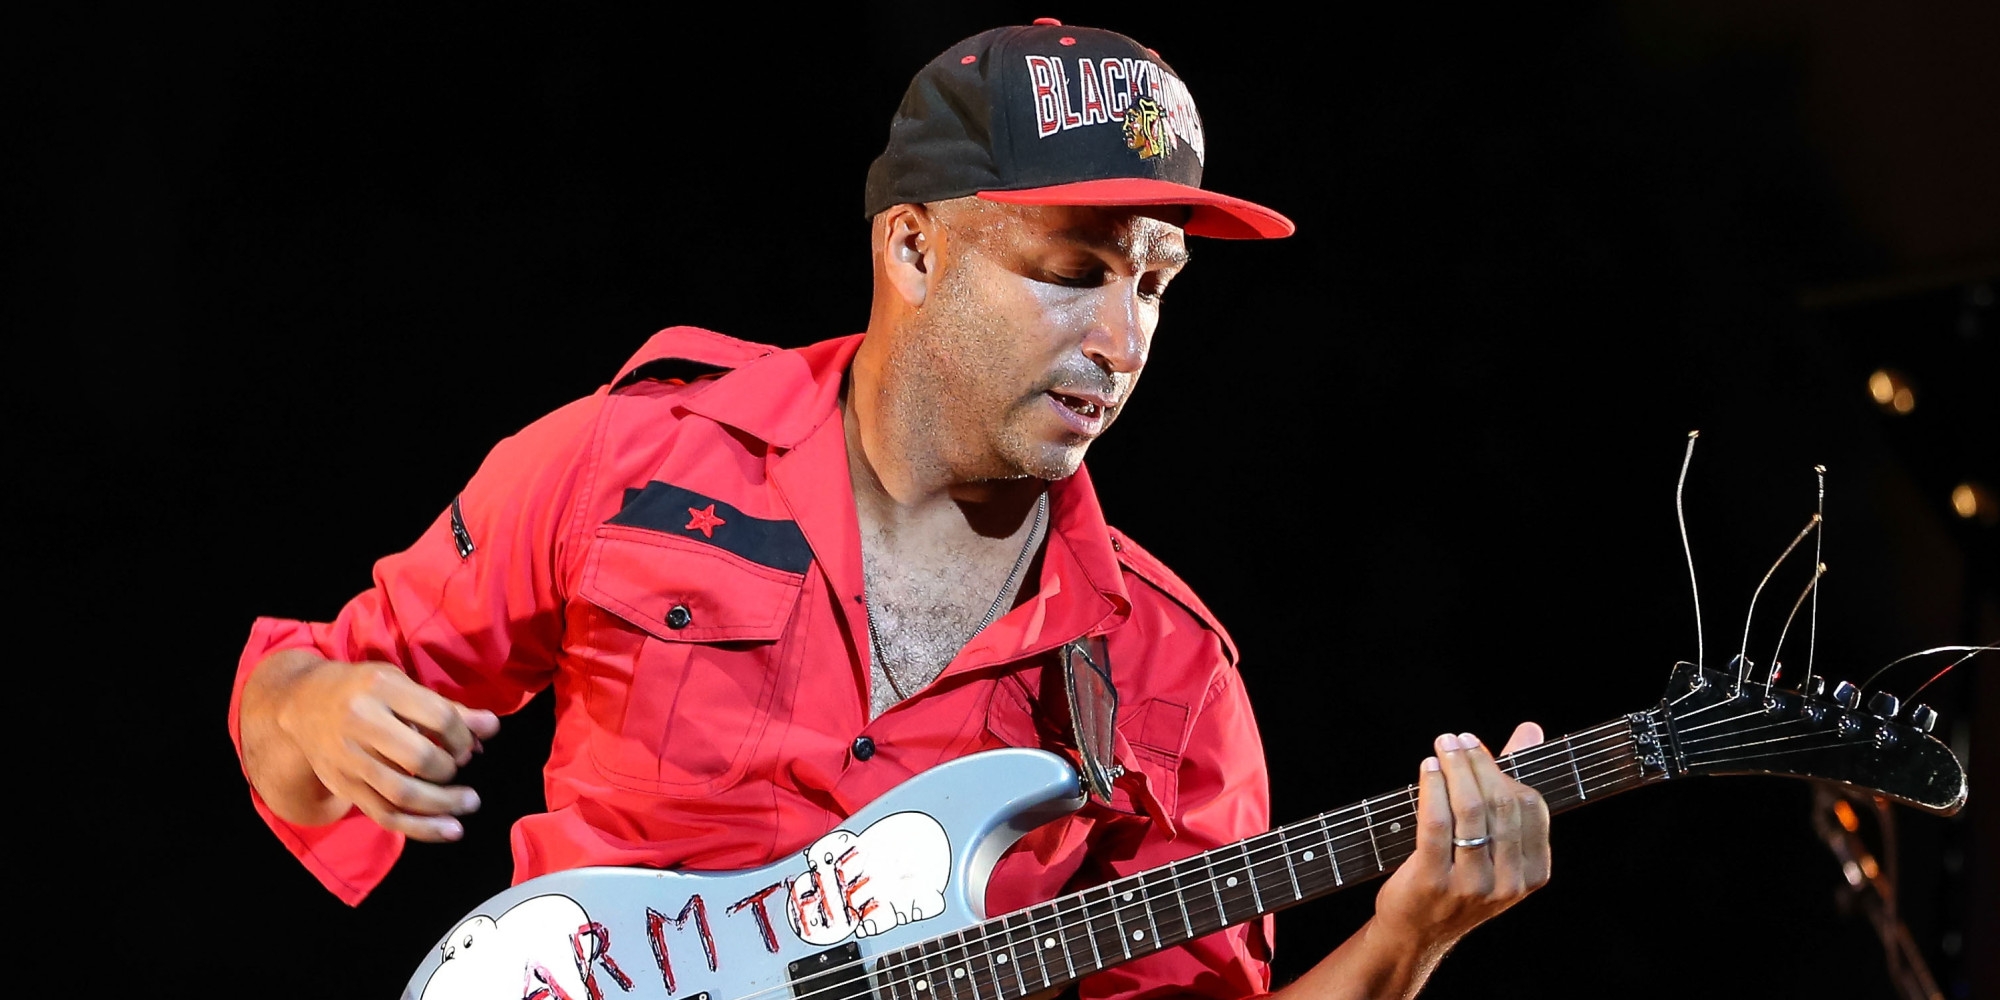 HOLLYWOOD, CA - SEPTEMBER 06:  Guitarist Tom Morello performs onstage during 'Rock Out!' at Ford Theatre on September 6, 2013 in Hollywood, California.  (Photo by Imeh Akpanudosen/Getty Images)